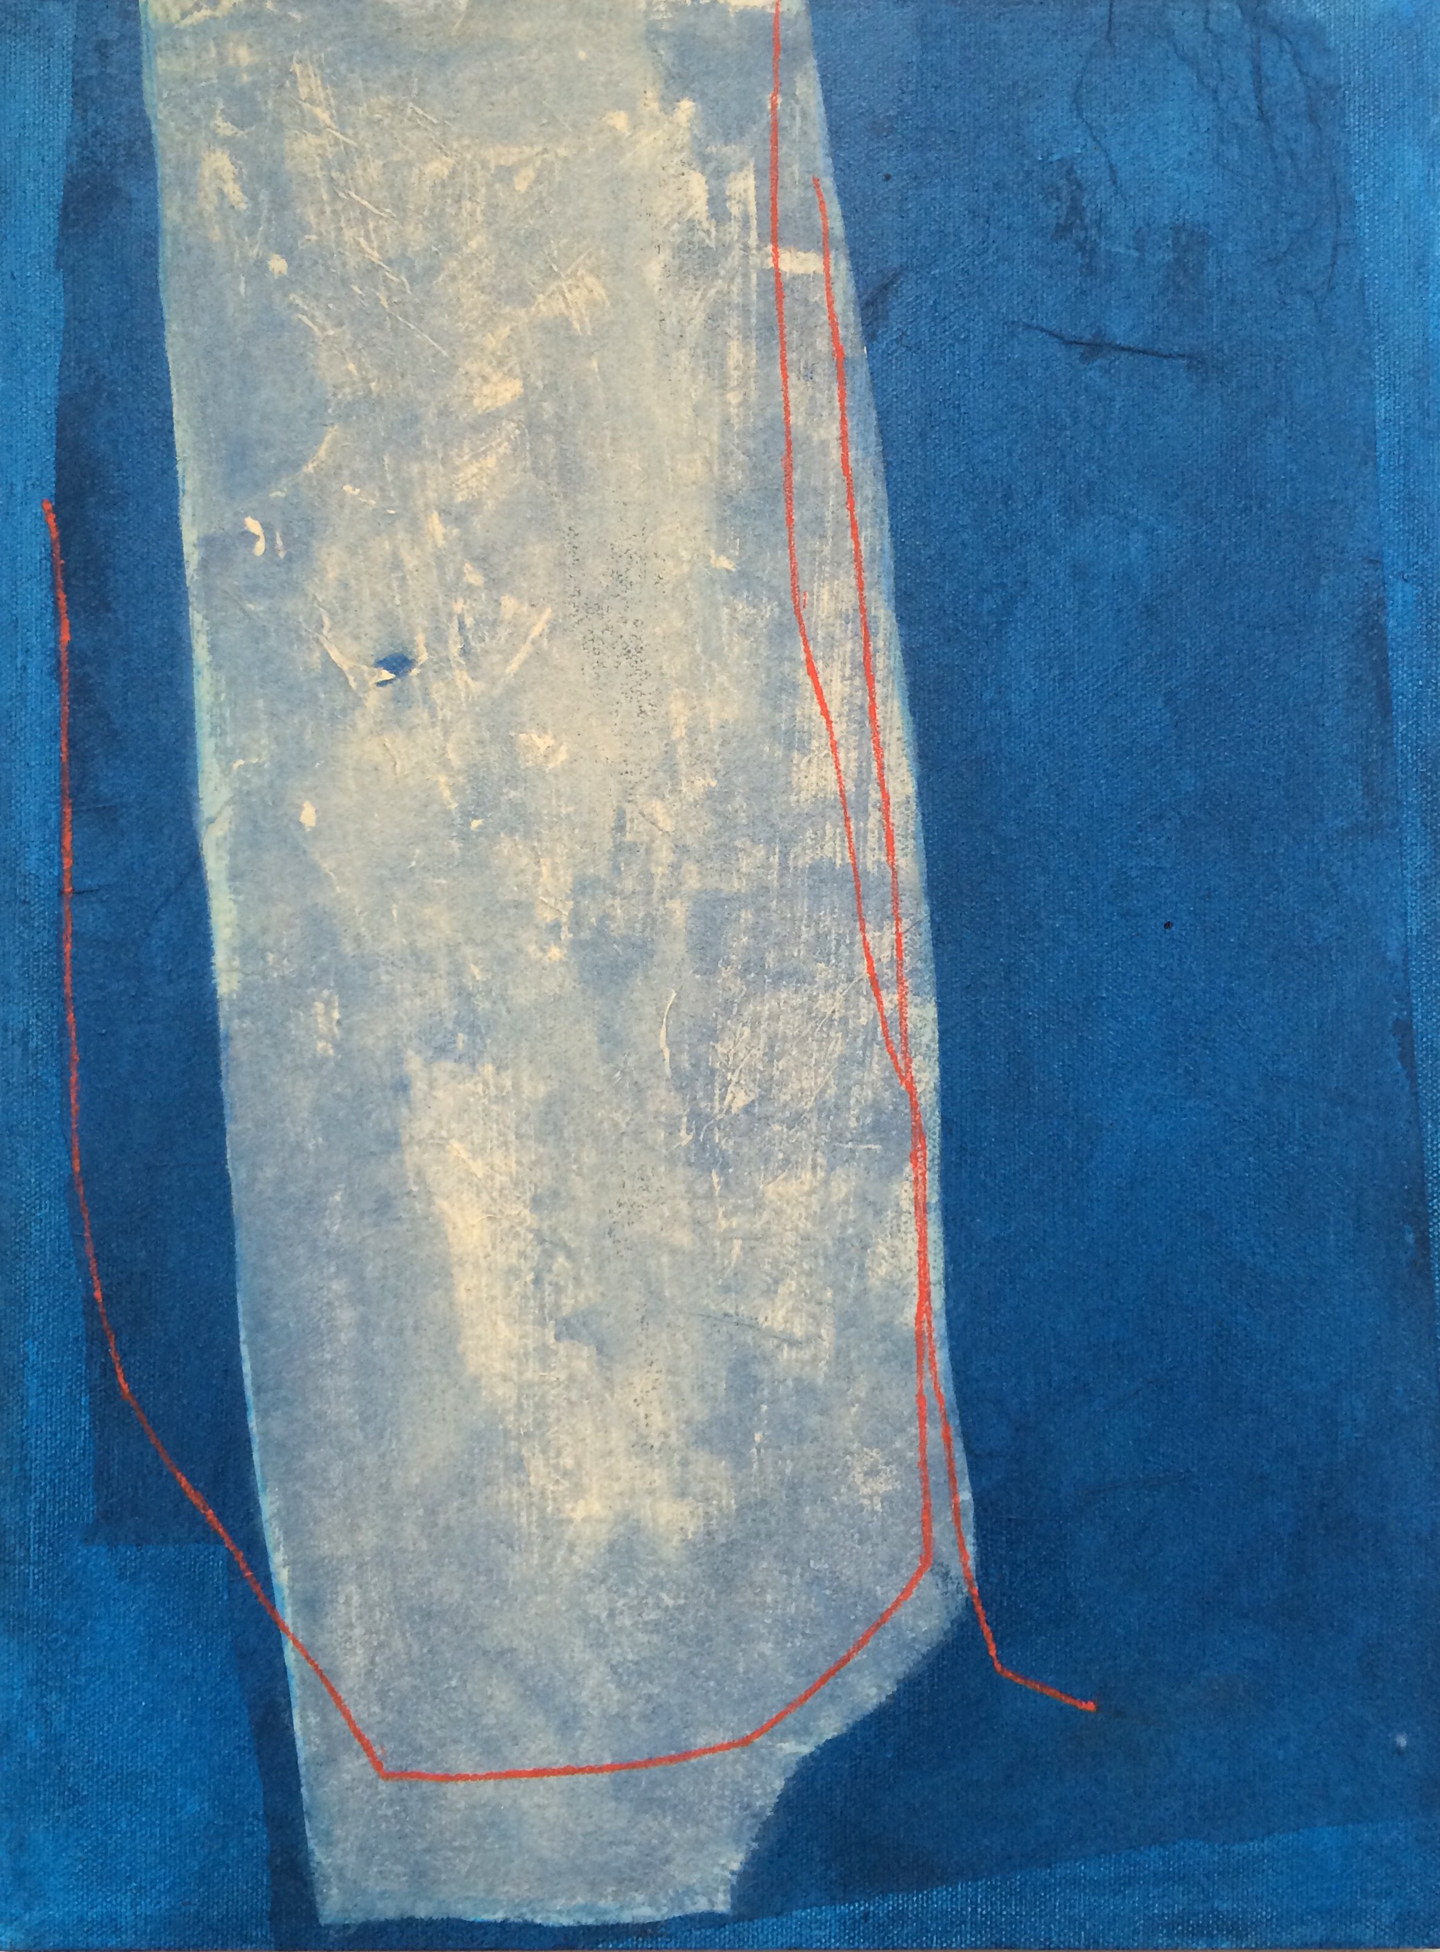 Buff Form on Blue with Red Lines, 2015, mixed media on canvas, 16 x 12 in, SOLD